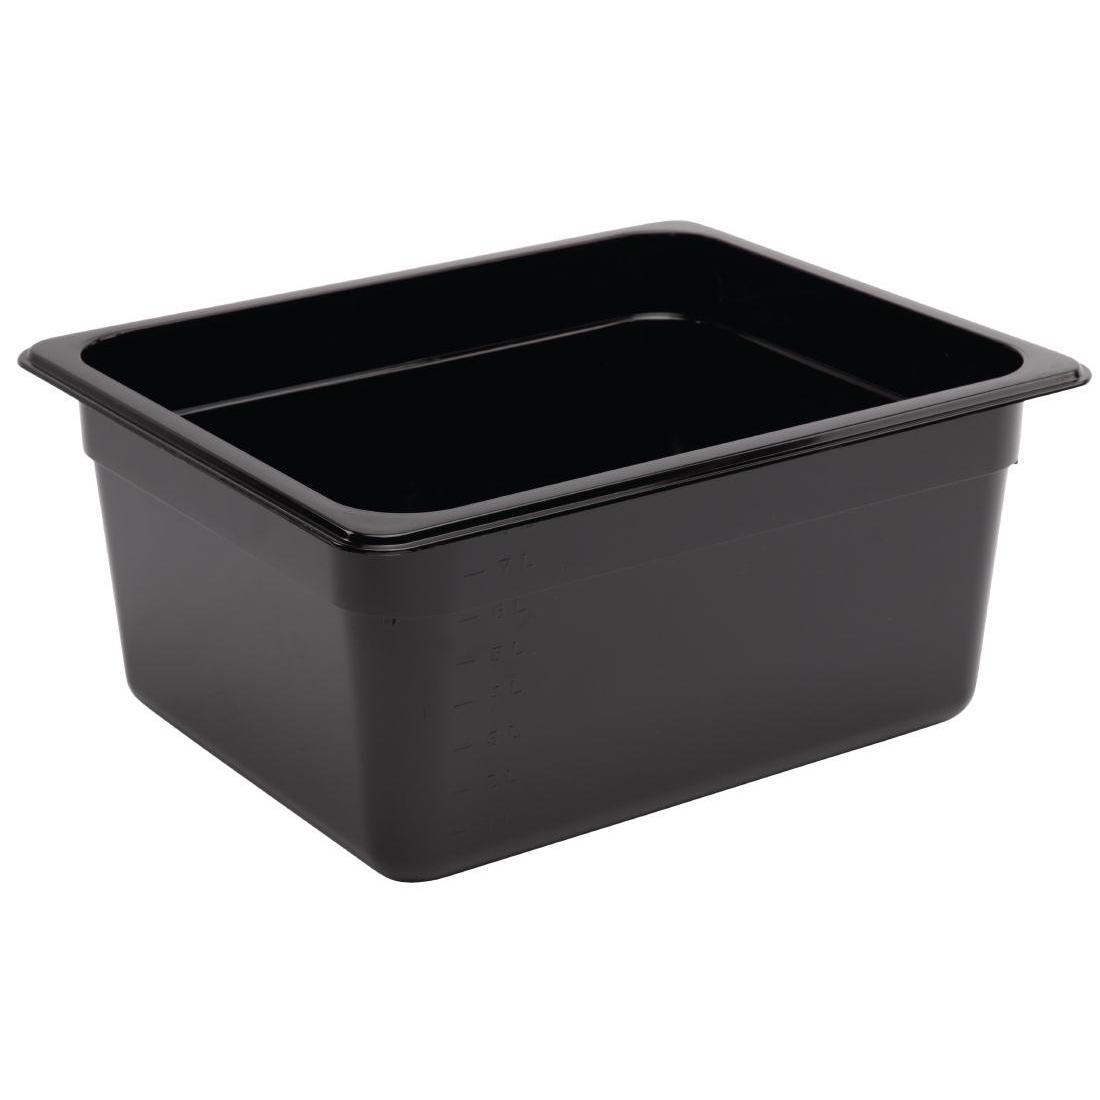 Vogue Polycarbonate 1/2 Gastronorm Container 150mm Black - U460